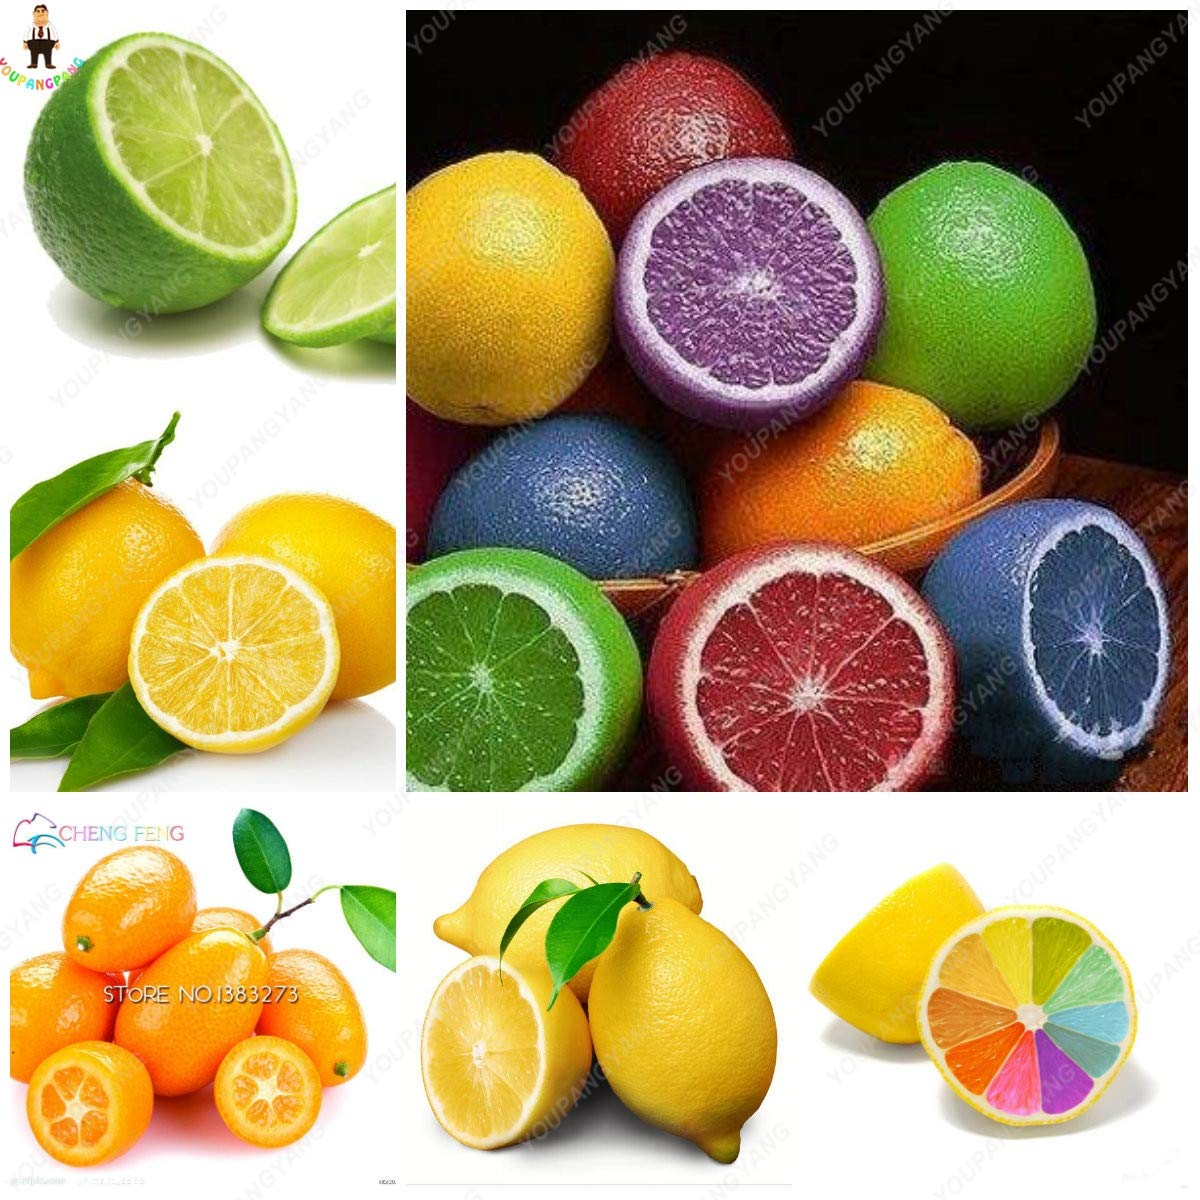 AGROBITS 20Pcs Japanese Rainbow Lemon Bonsai Dwarf Lime Tea Fruit Plants Garden Organic Citrus Limon Tree Semillas de Fruta: Pink